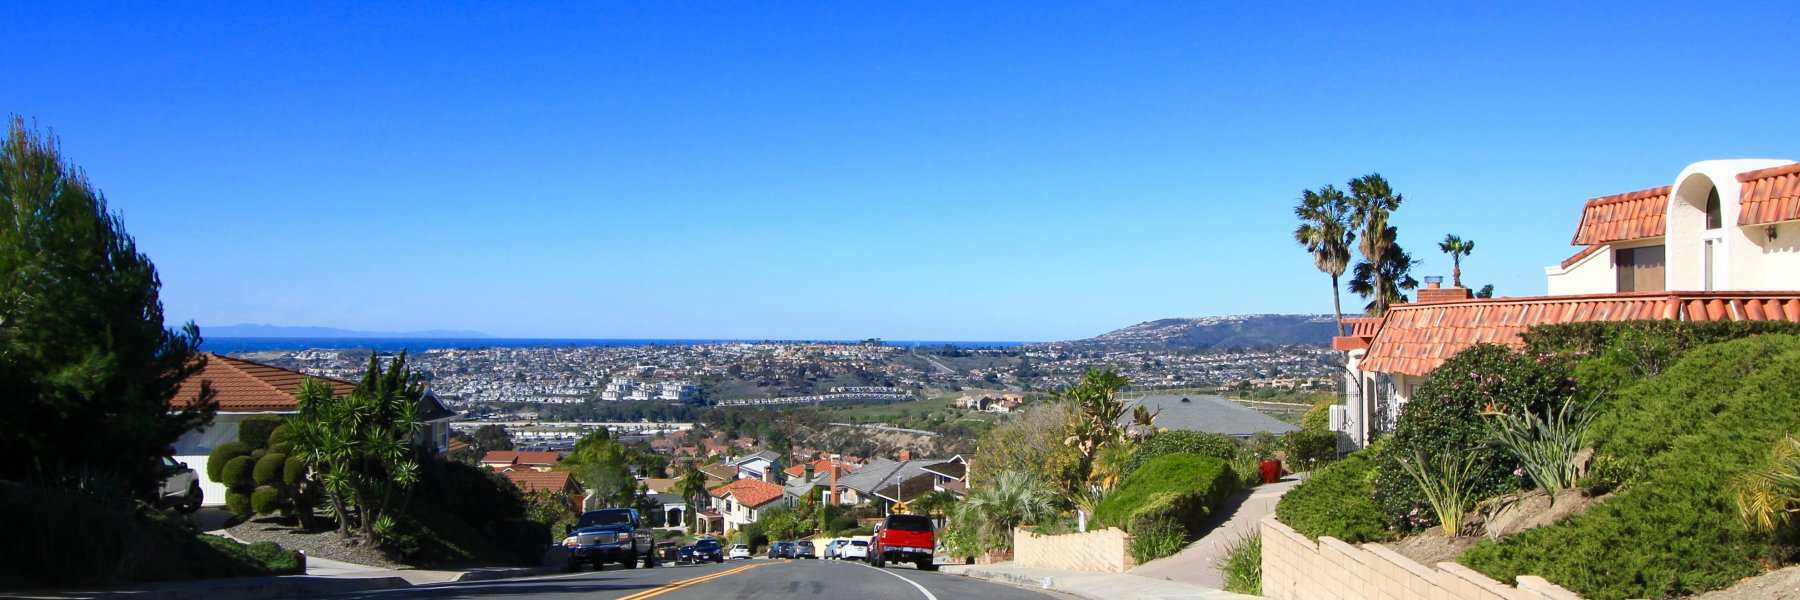 Harbor Estates is a community of homes in San Clemente Ca